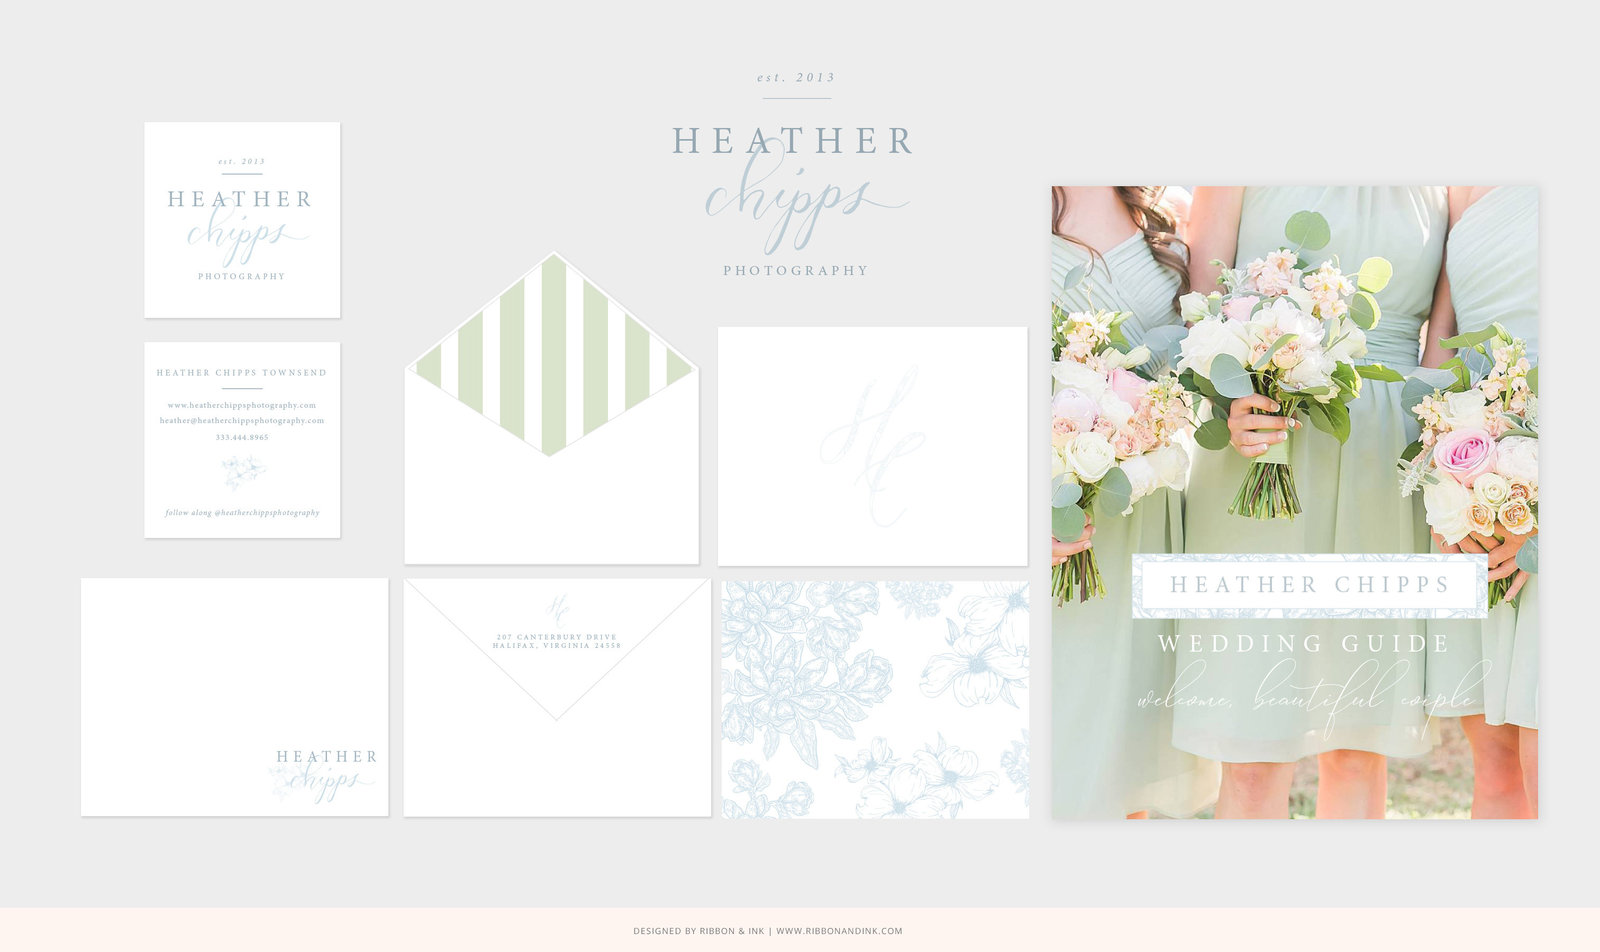 HeatherChipps_Stationery_v01